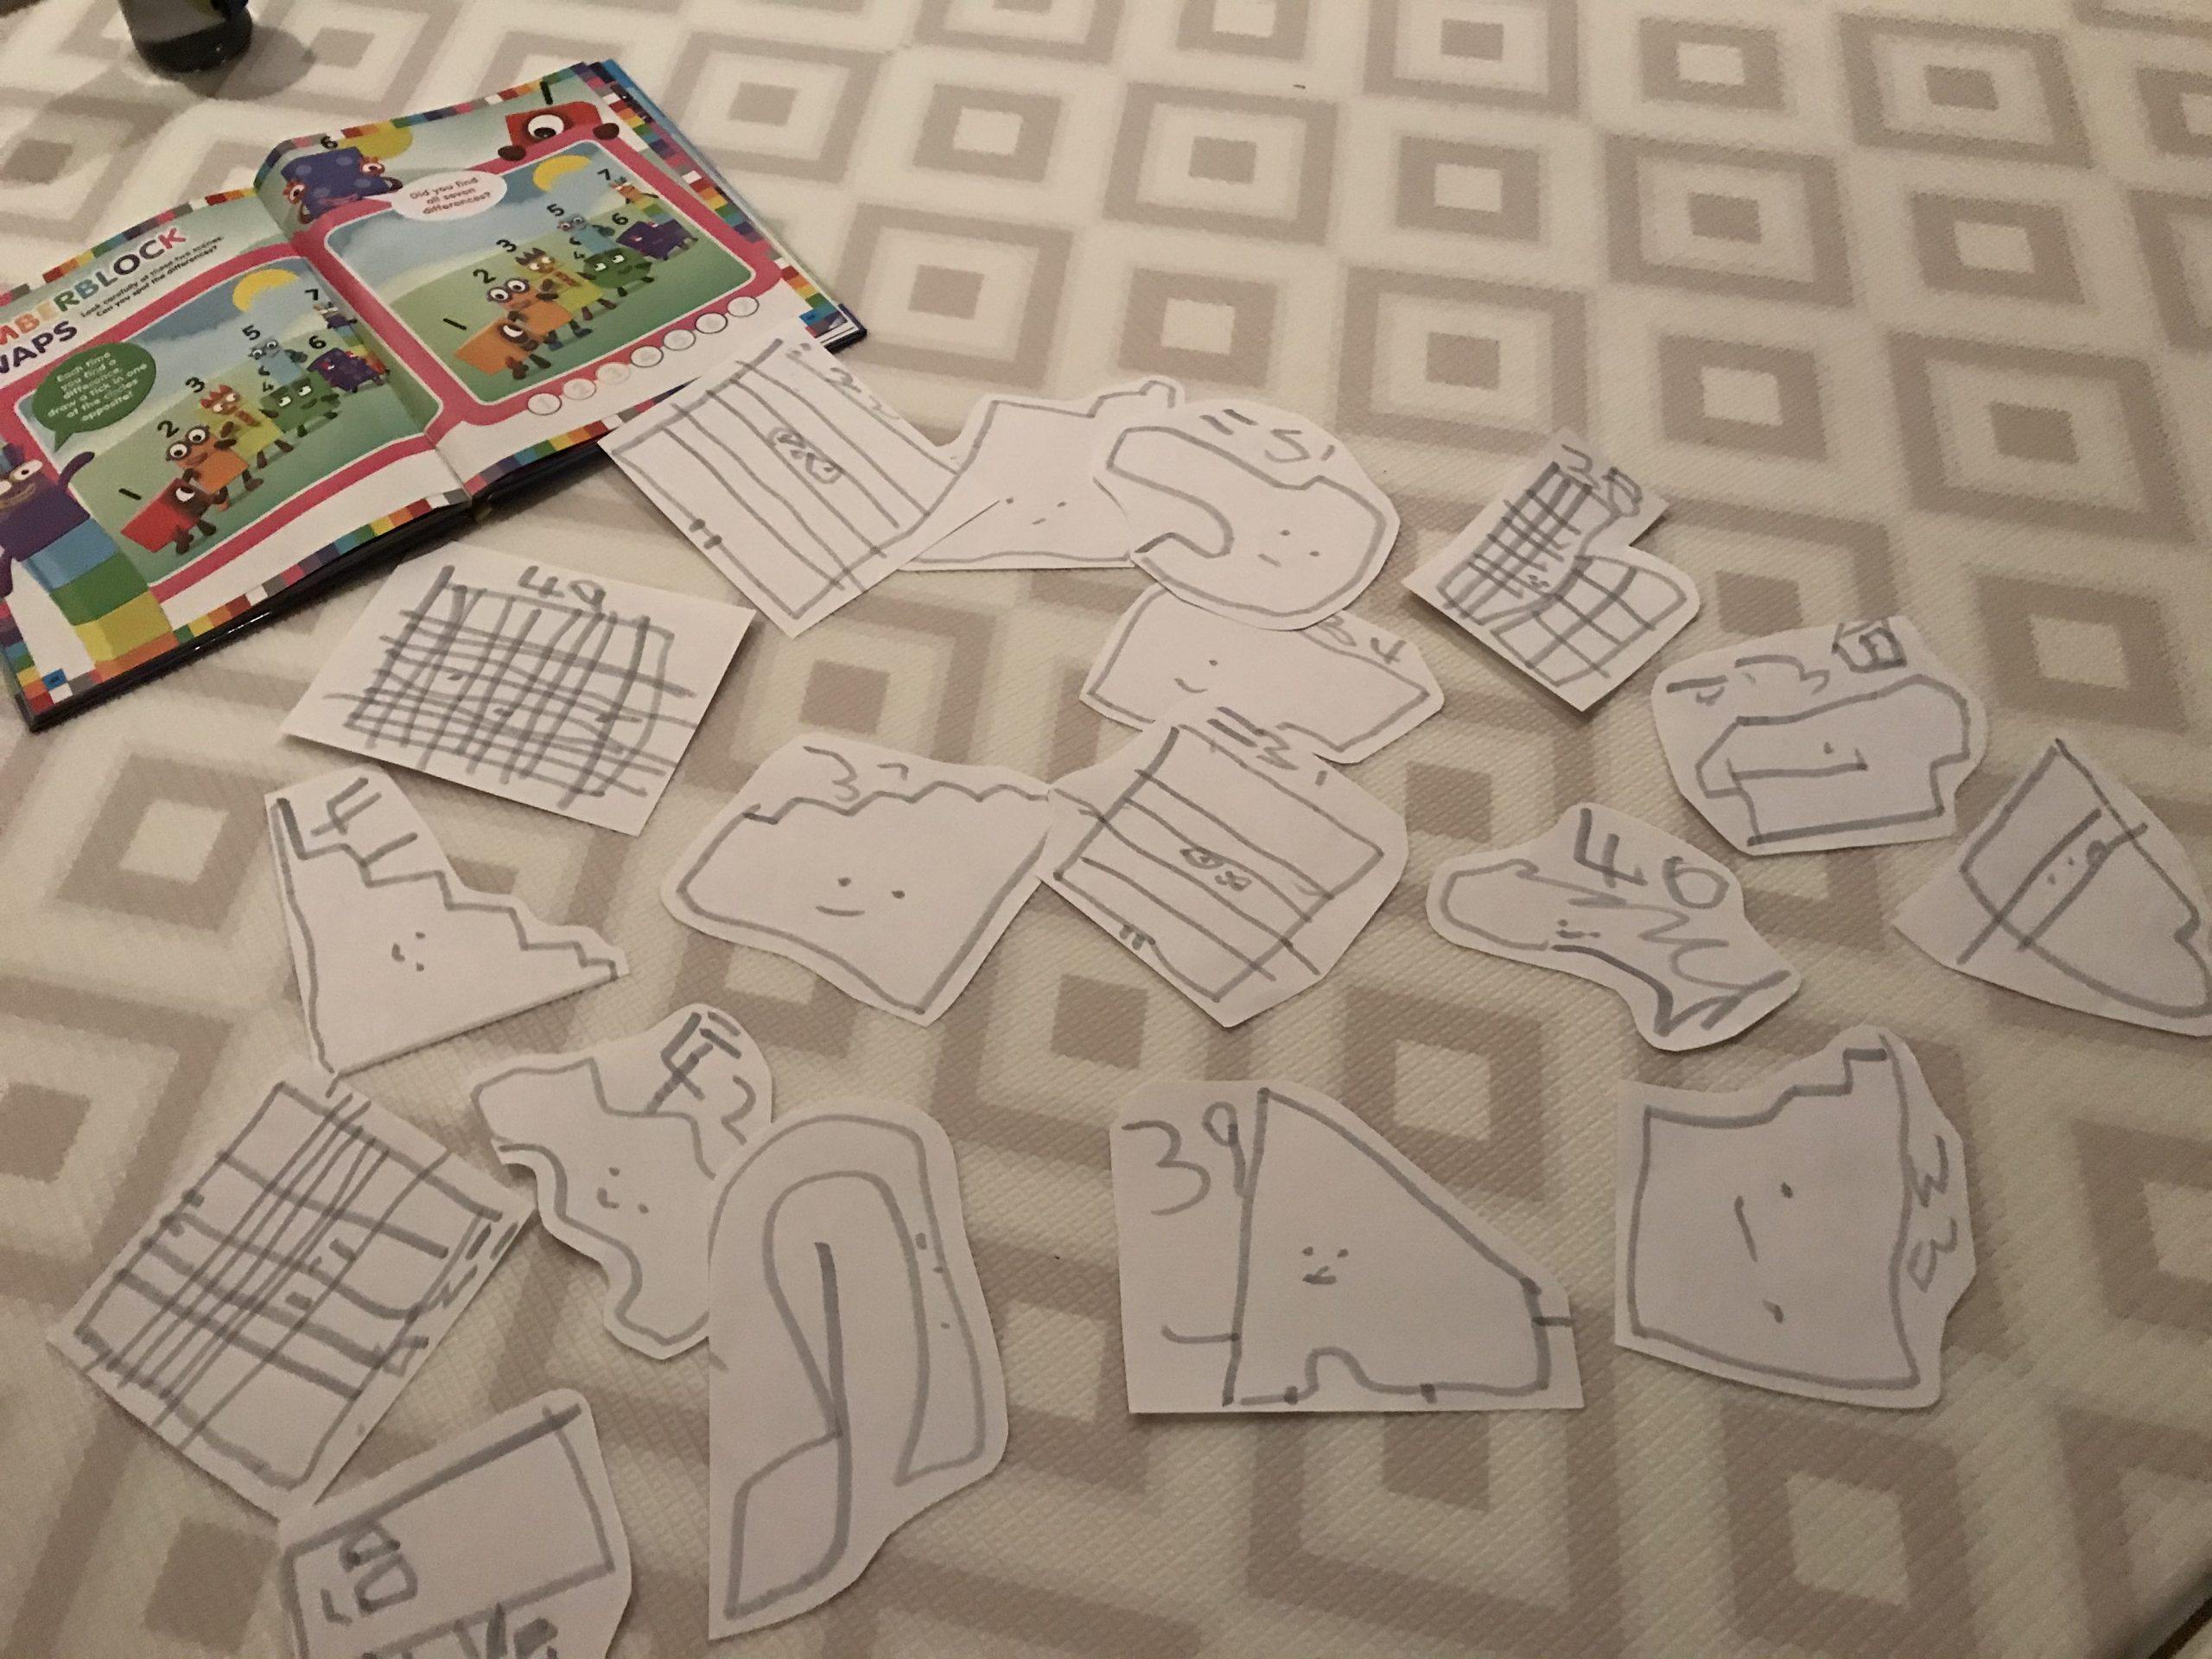 Frugal toys can be drawn on paper, which is great practice for preschoolers